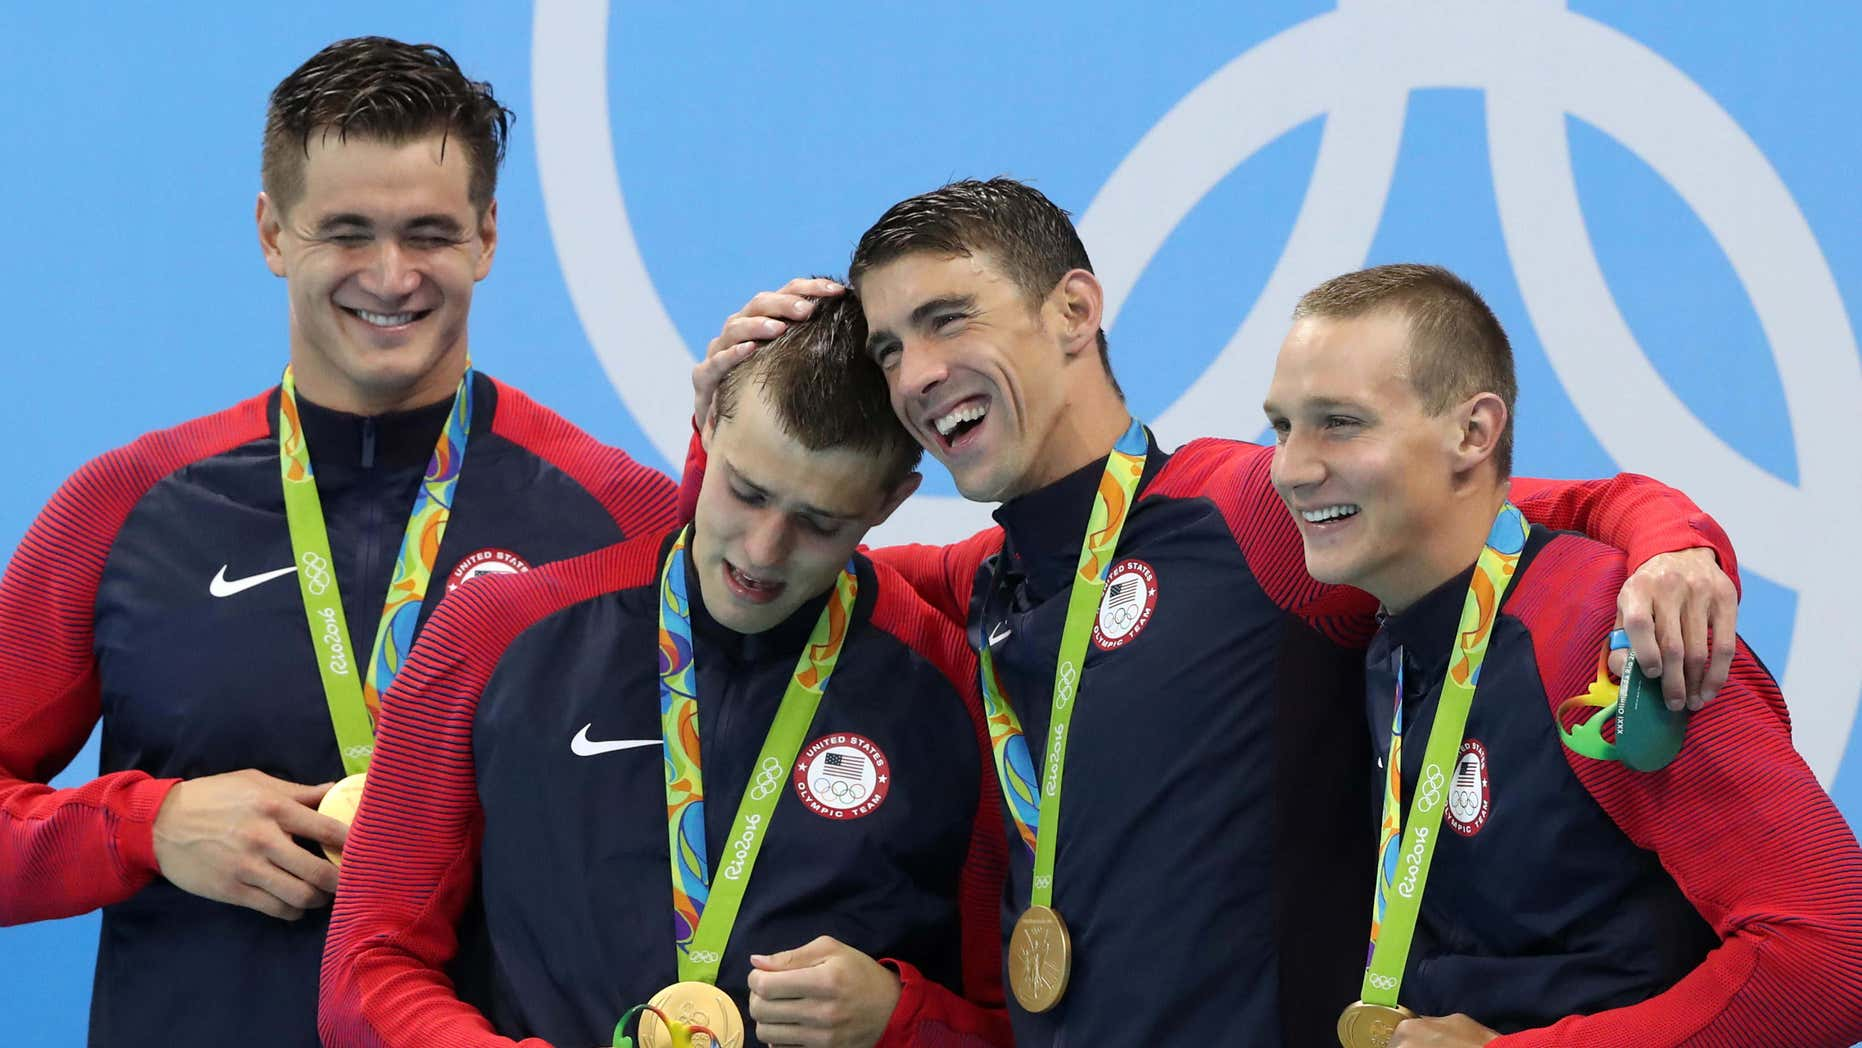 The United States team from left, Nathan Adrian, Ryan Held, Michael Phelps and Caeleb Dressel celebrate on the medal ceremony after winning the gold medal in the men's 4x100-meter freestyle relay during the swimming competitions at the 2016 Summer Olympics, Monday, Aug. 8, 2016, in Rio de Janeiro, Brazil.